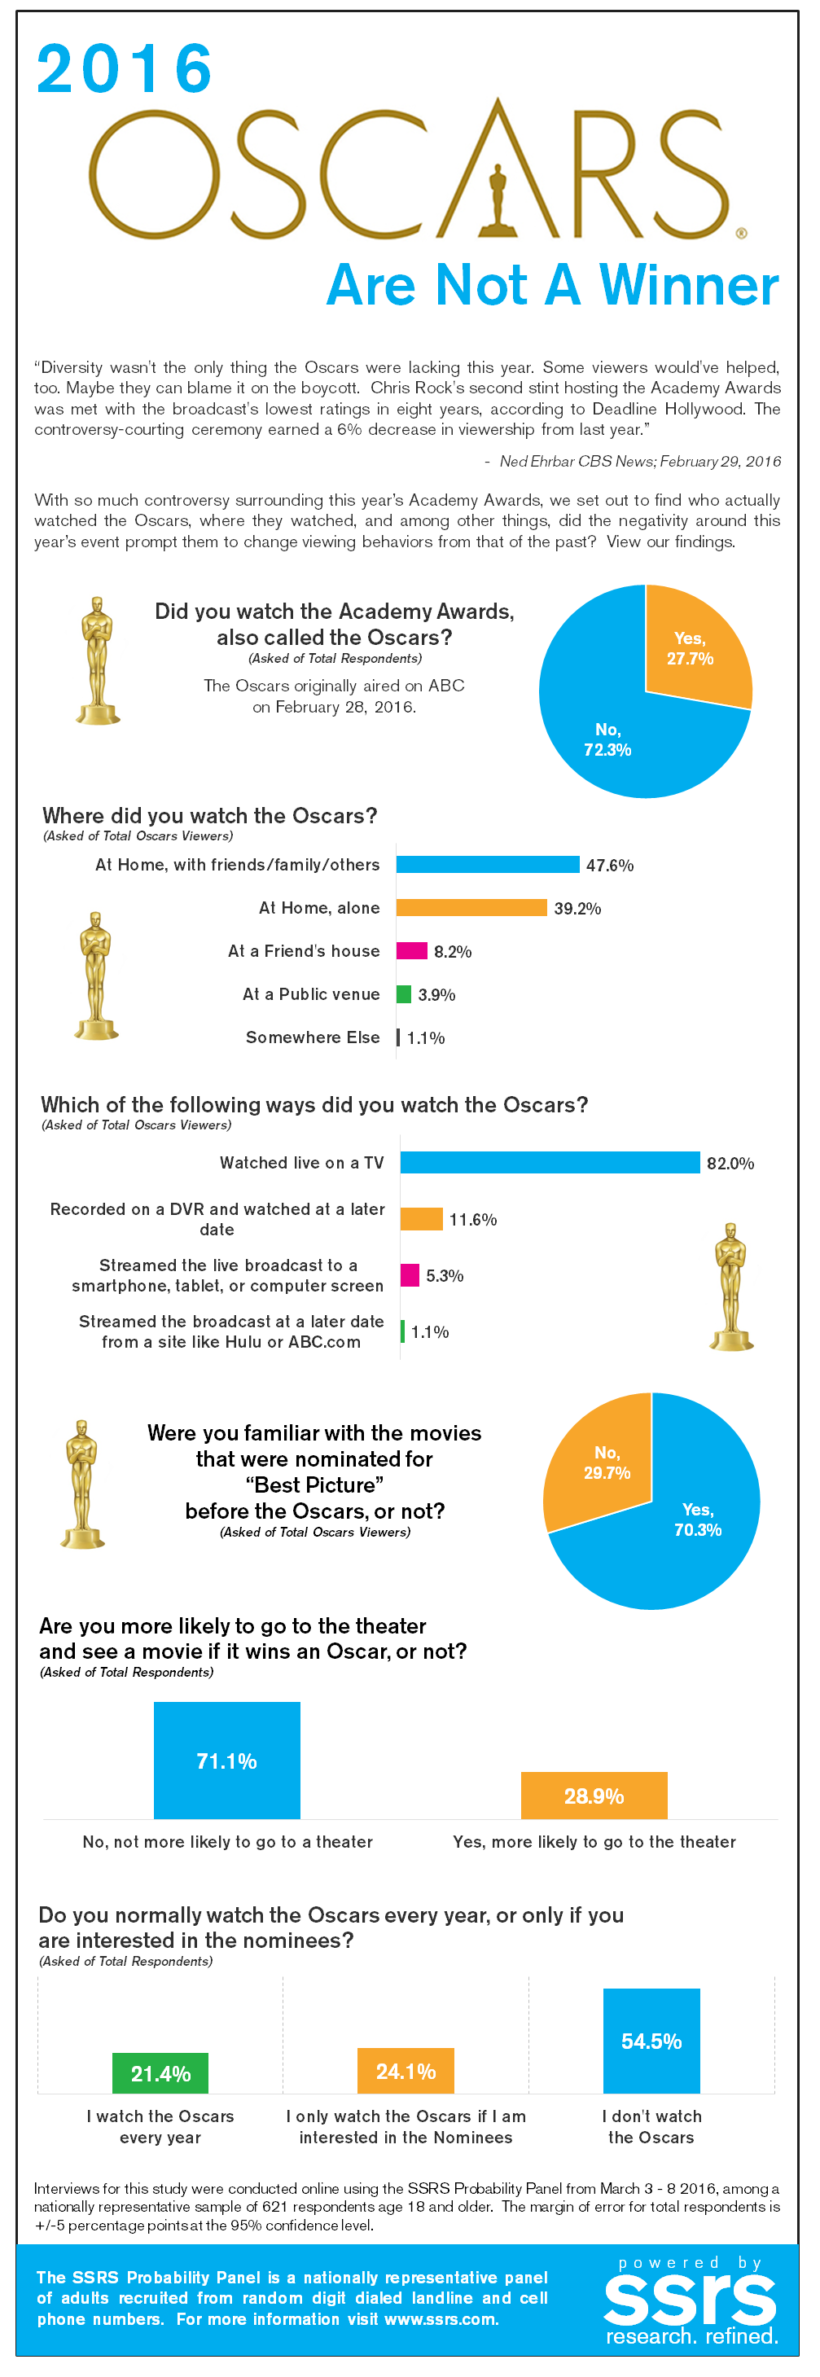 2016 Oscars Are Not A Winner